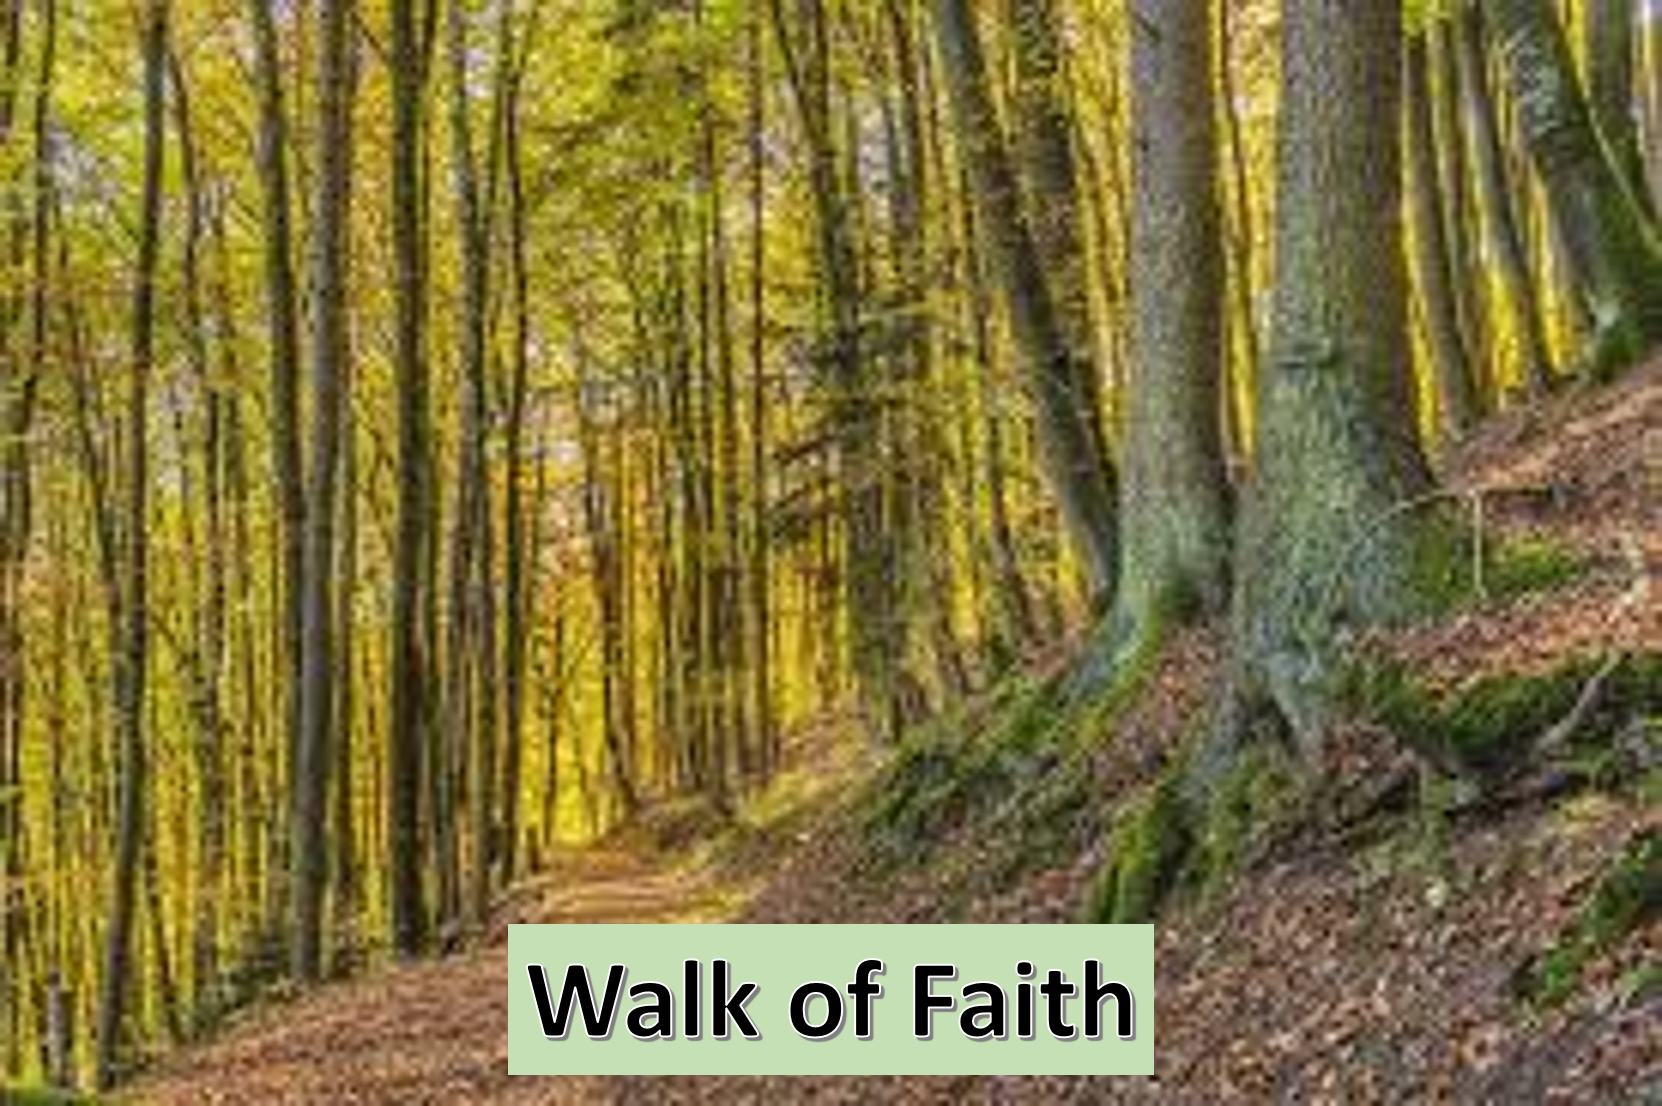 A study of our walk with Christ.